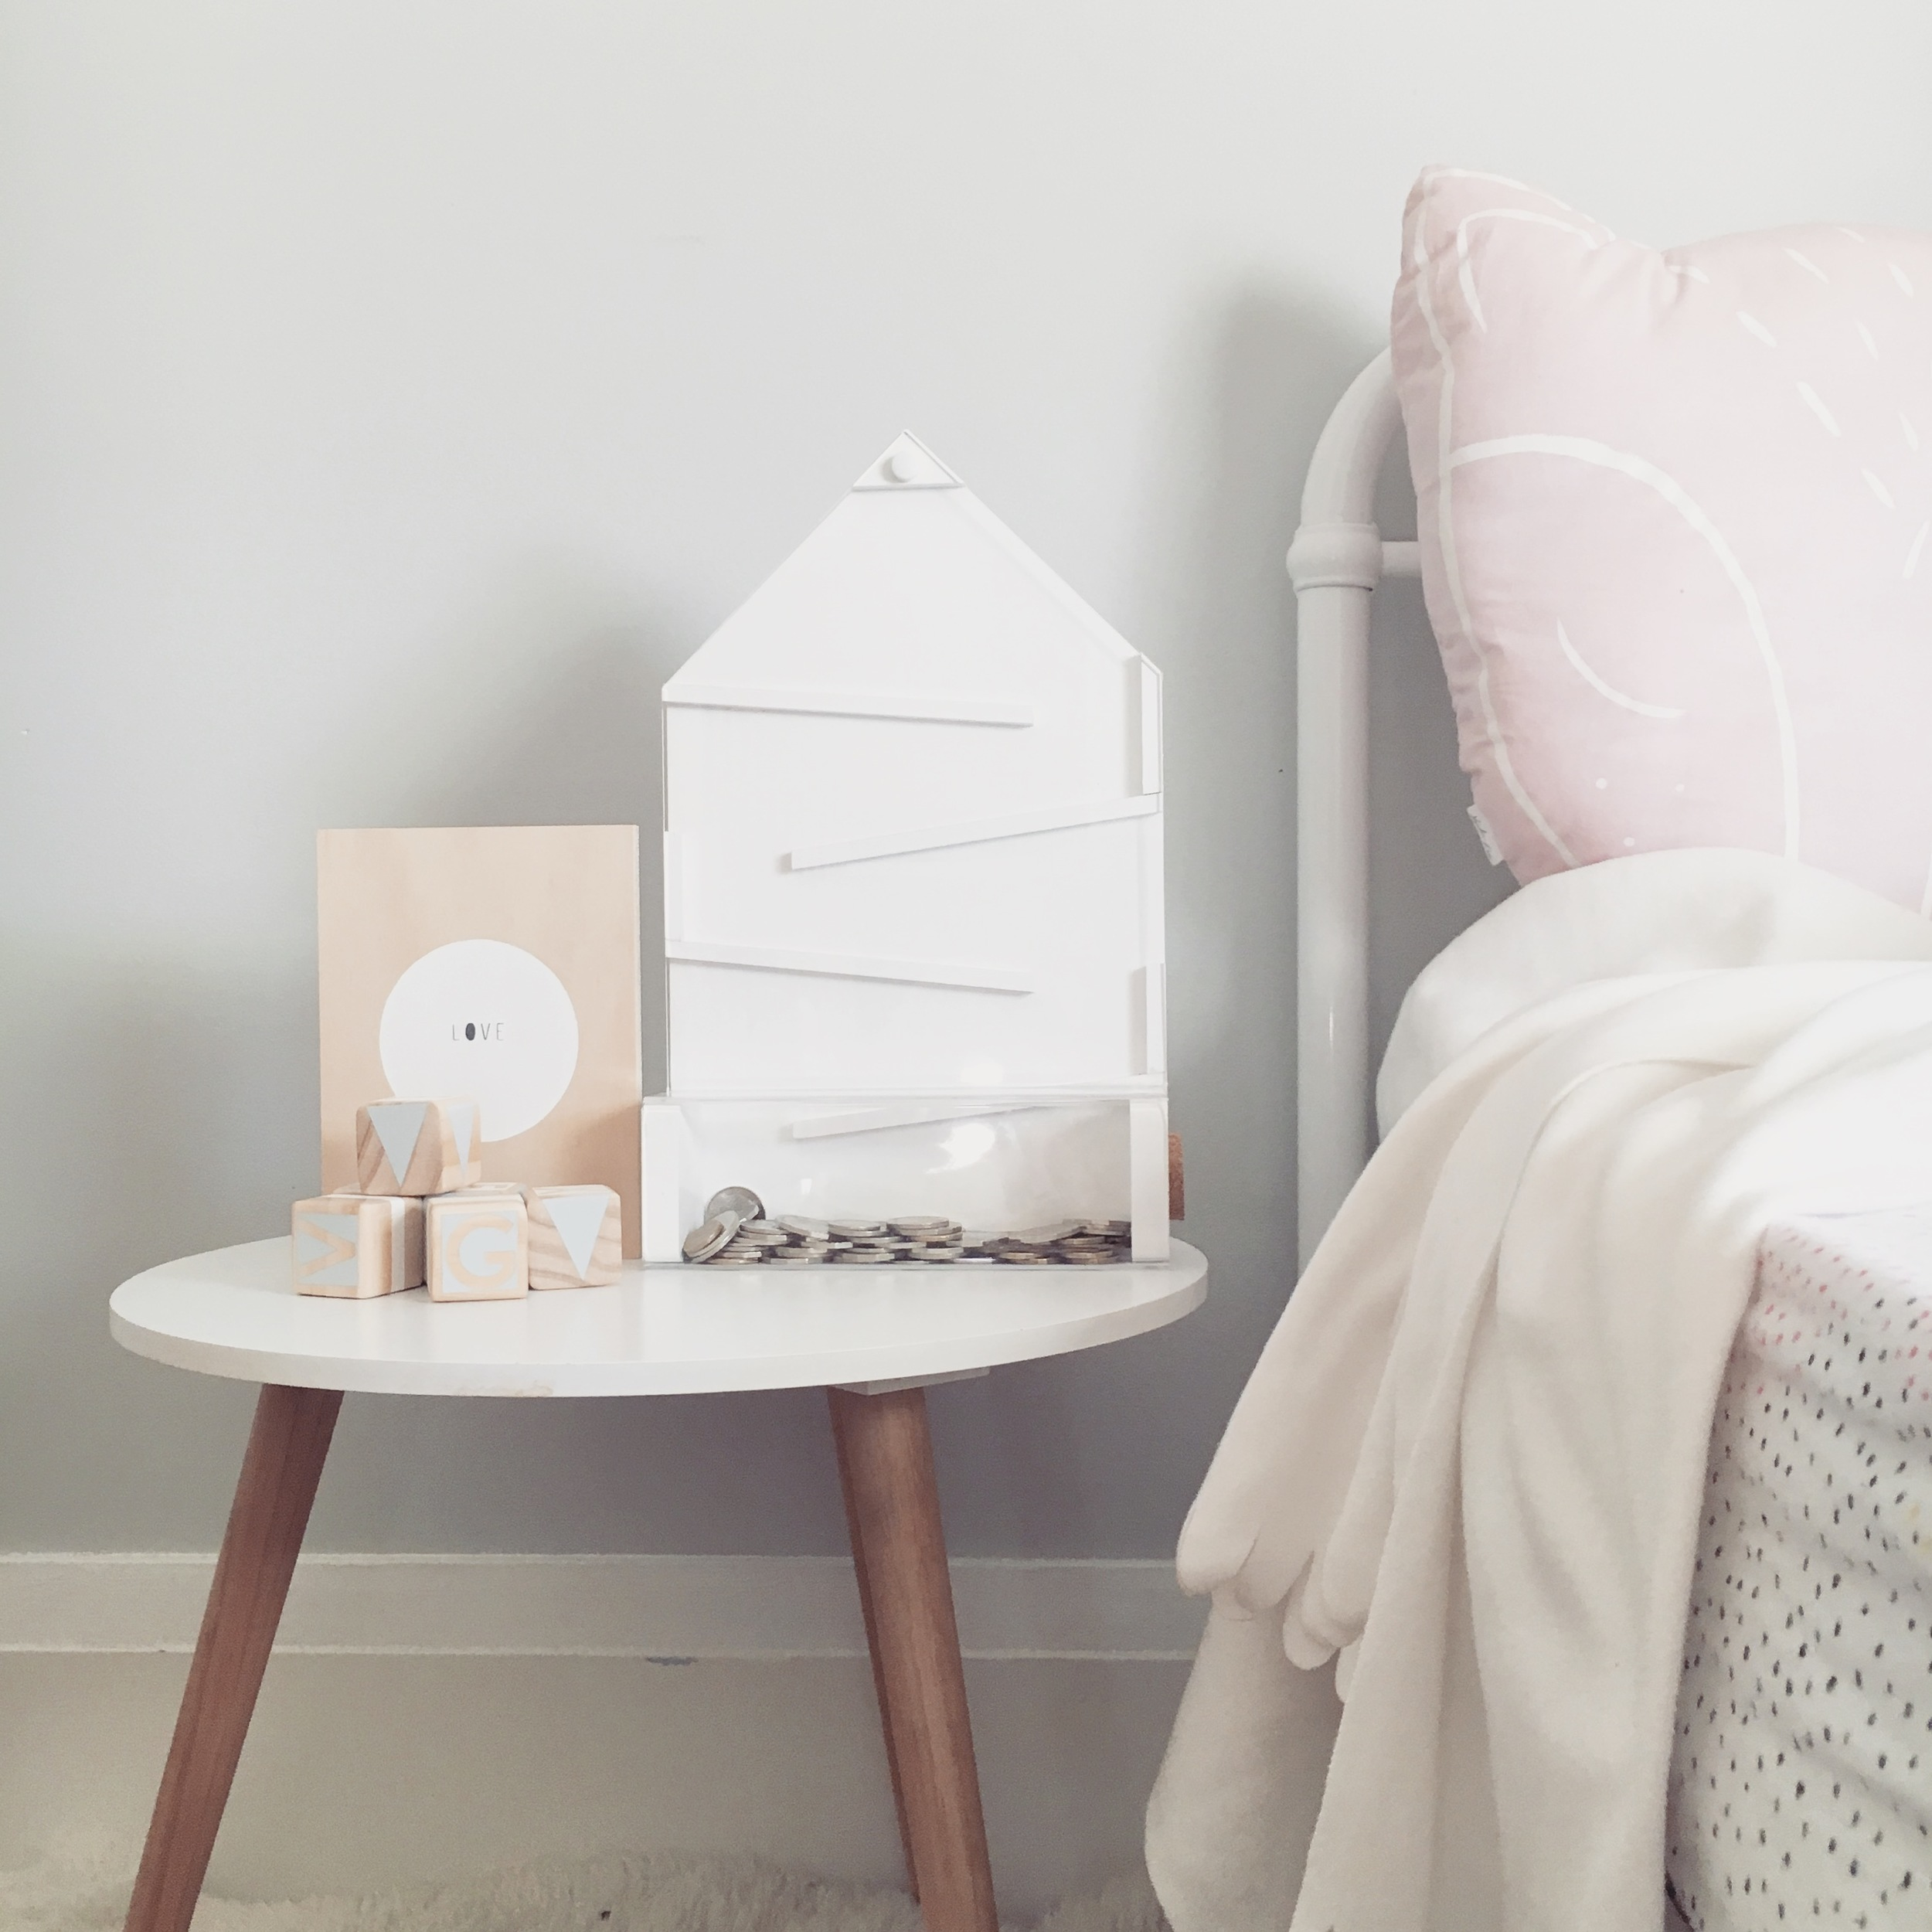 Coin Bank from Concrete Blond. Blocks from Gold Rabbit & Co. Wood Print from Me + Amber.